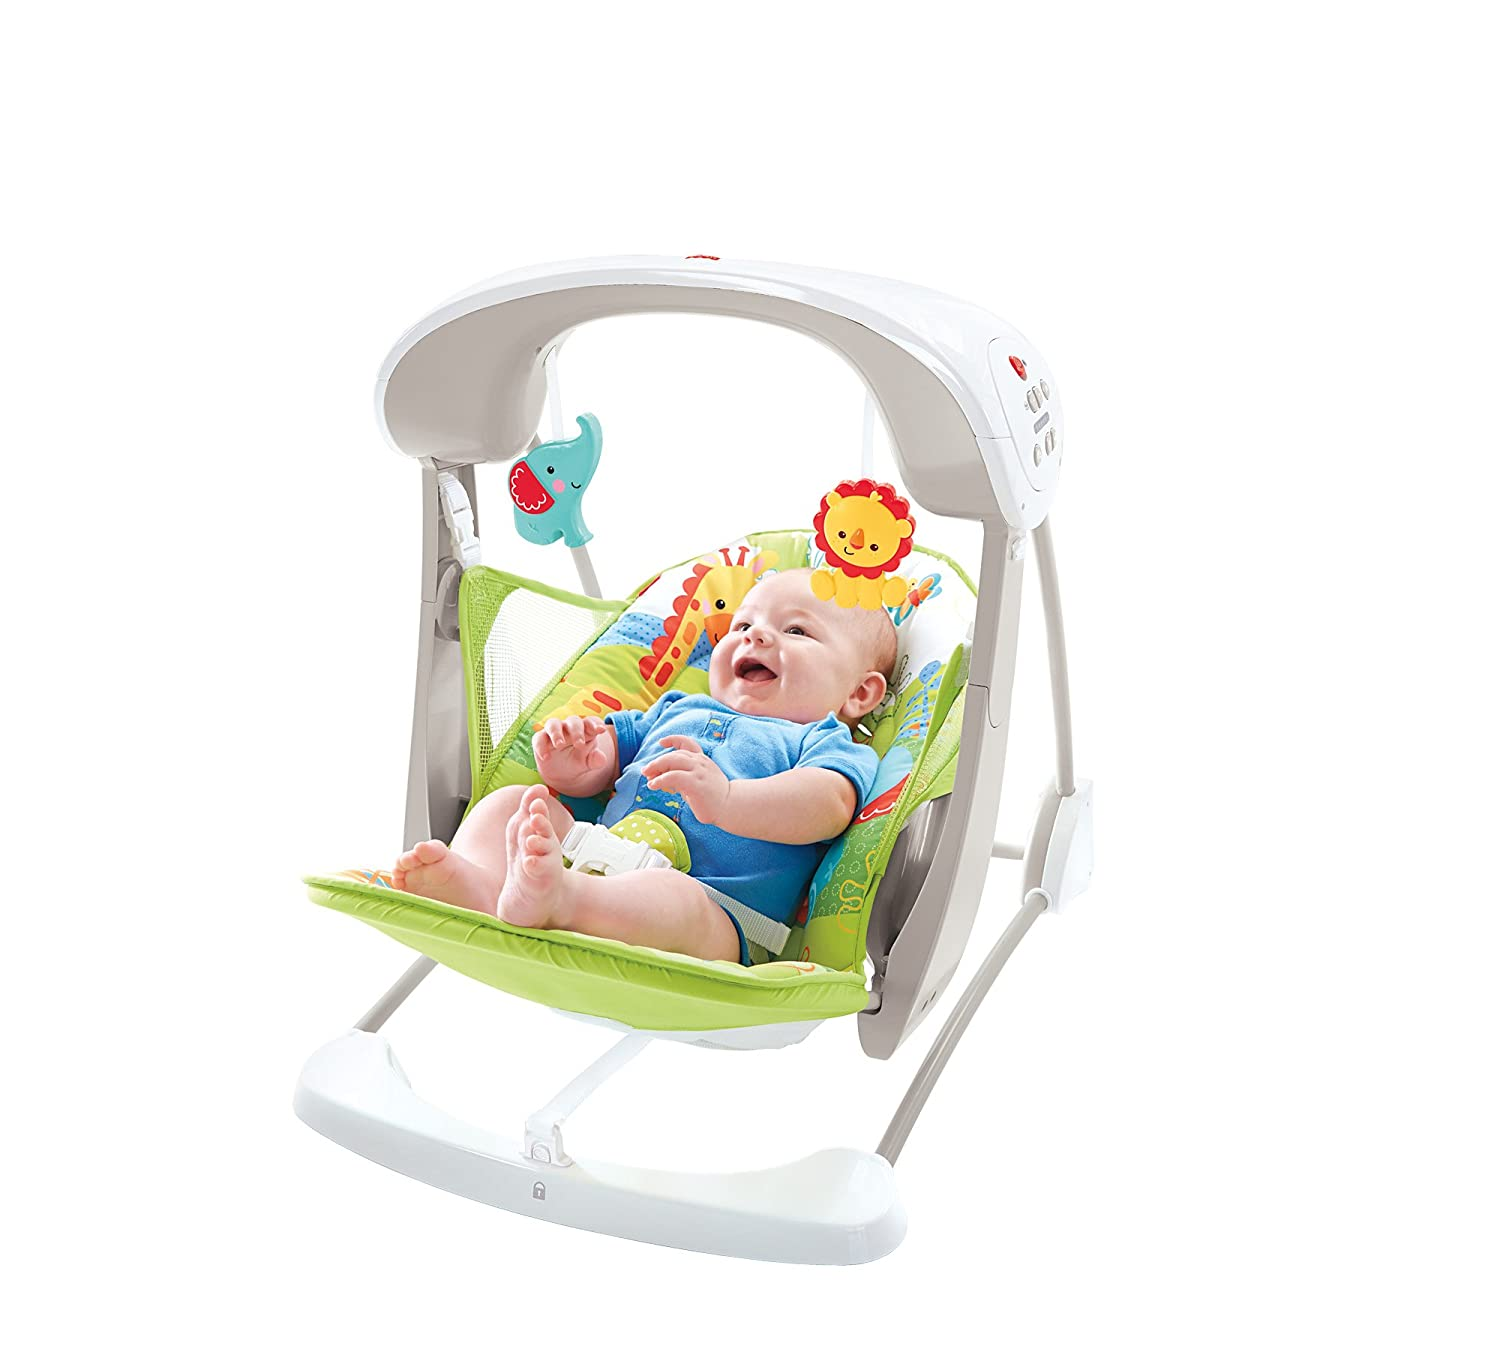 Fisher Price Take Along Swing And Seat, Rainforest Friends, One Size Amazonca